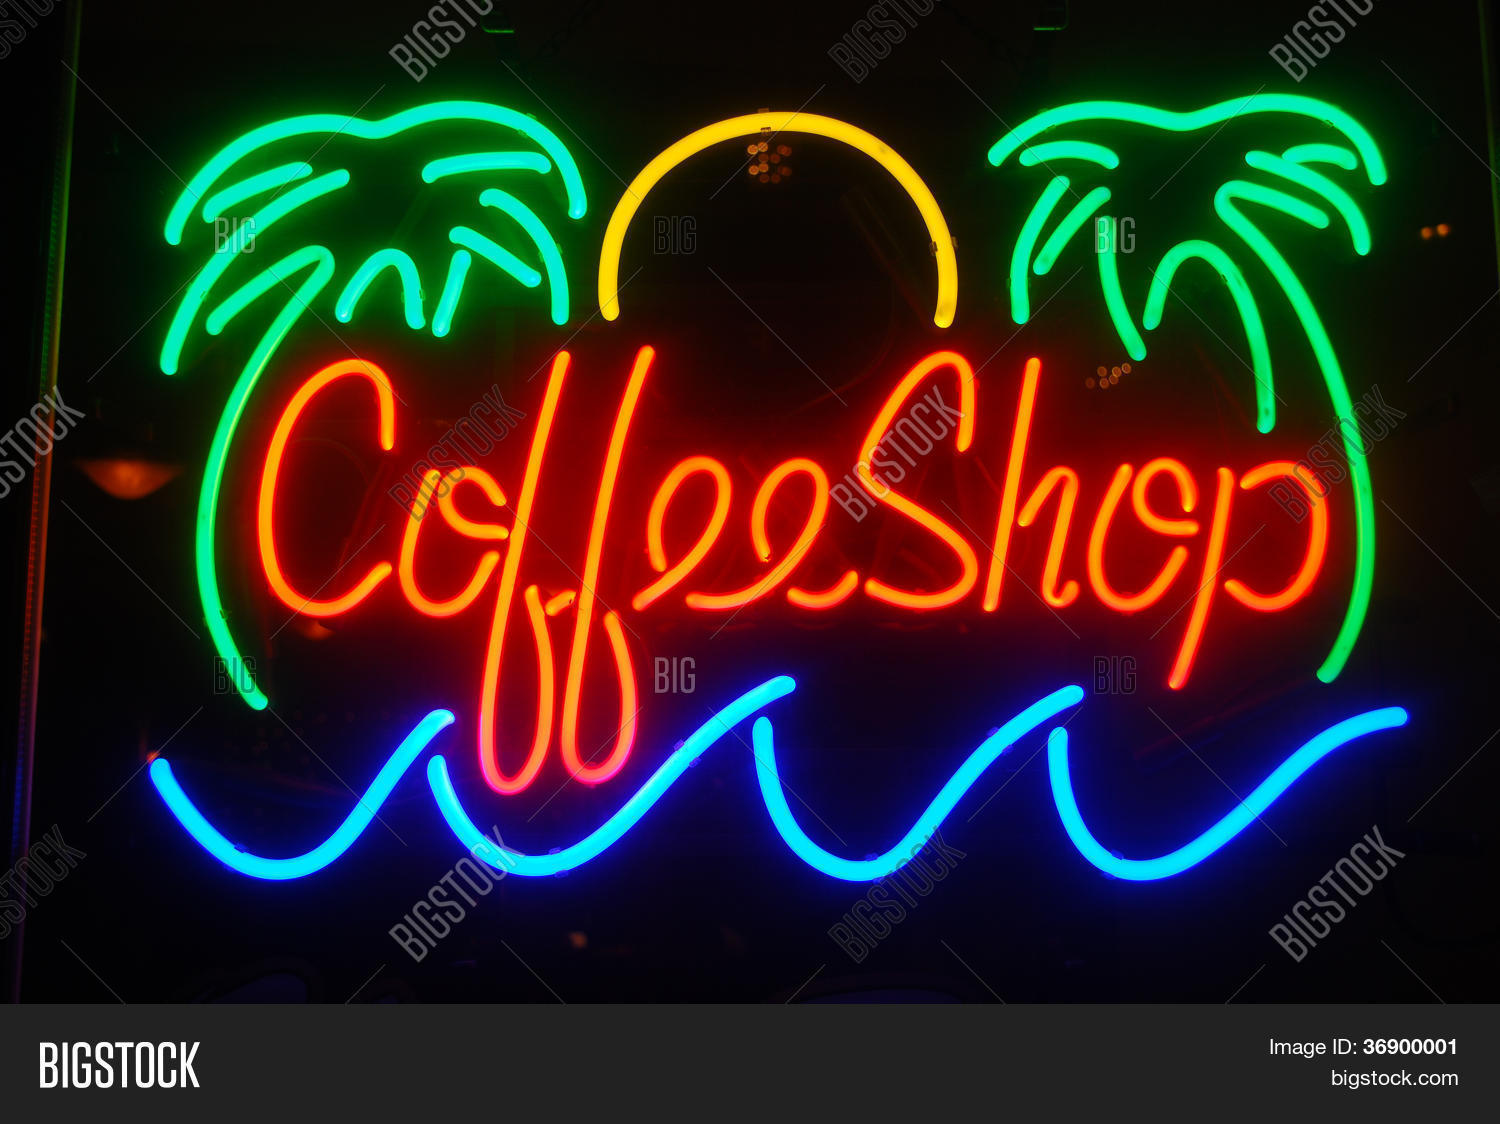 Coffee Shop Amsterdam Image Photo Free Trial Bigstock